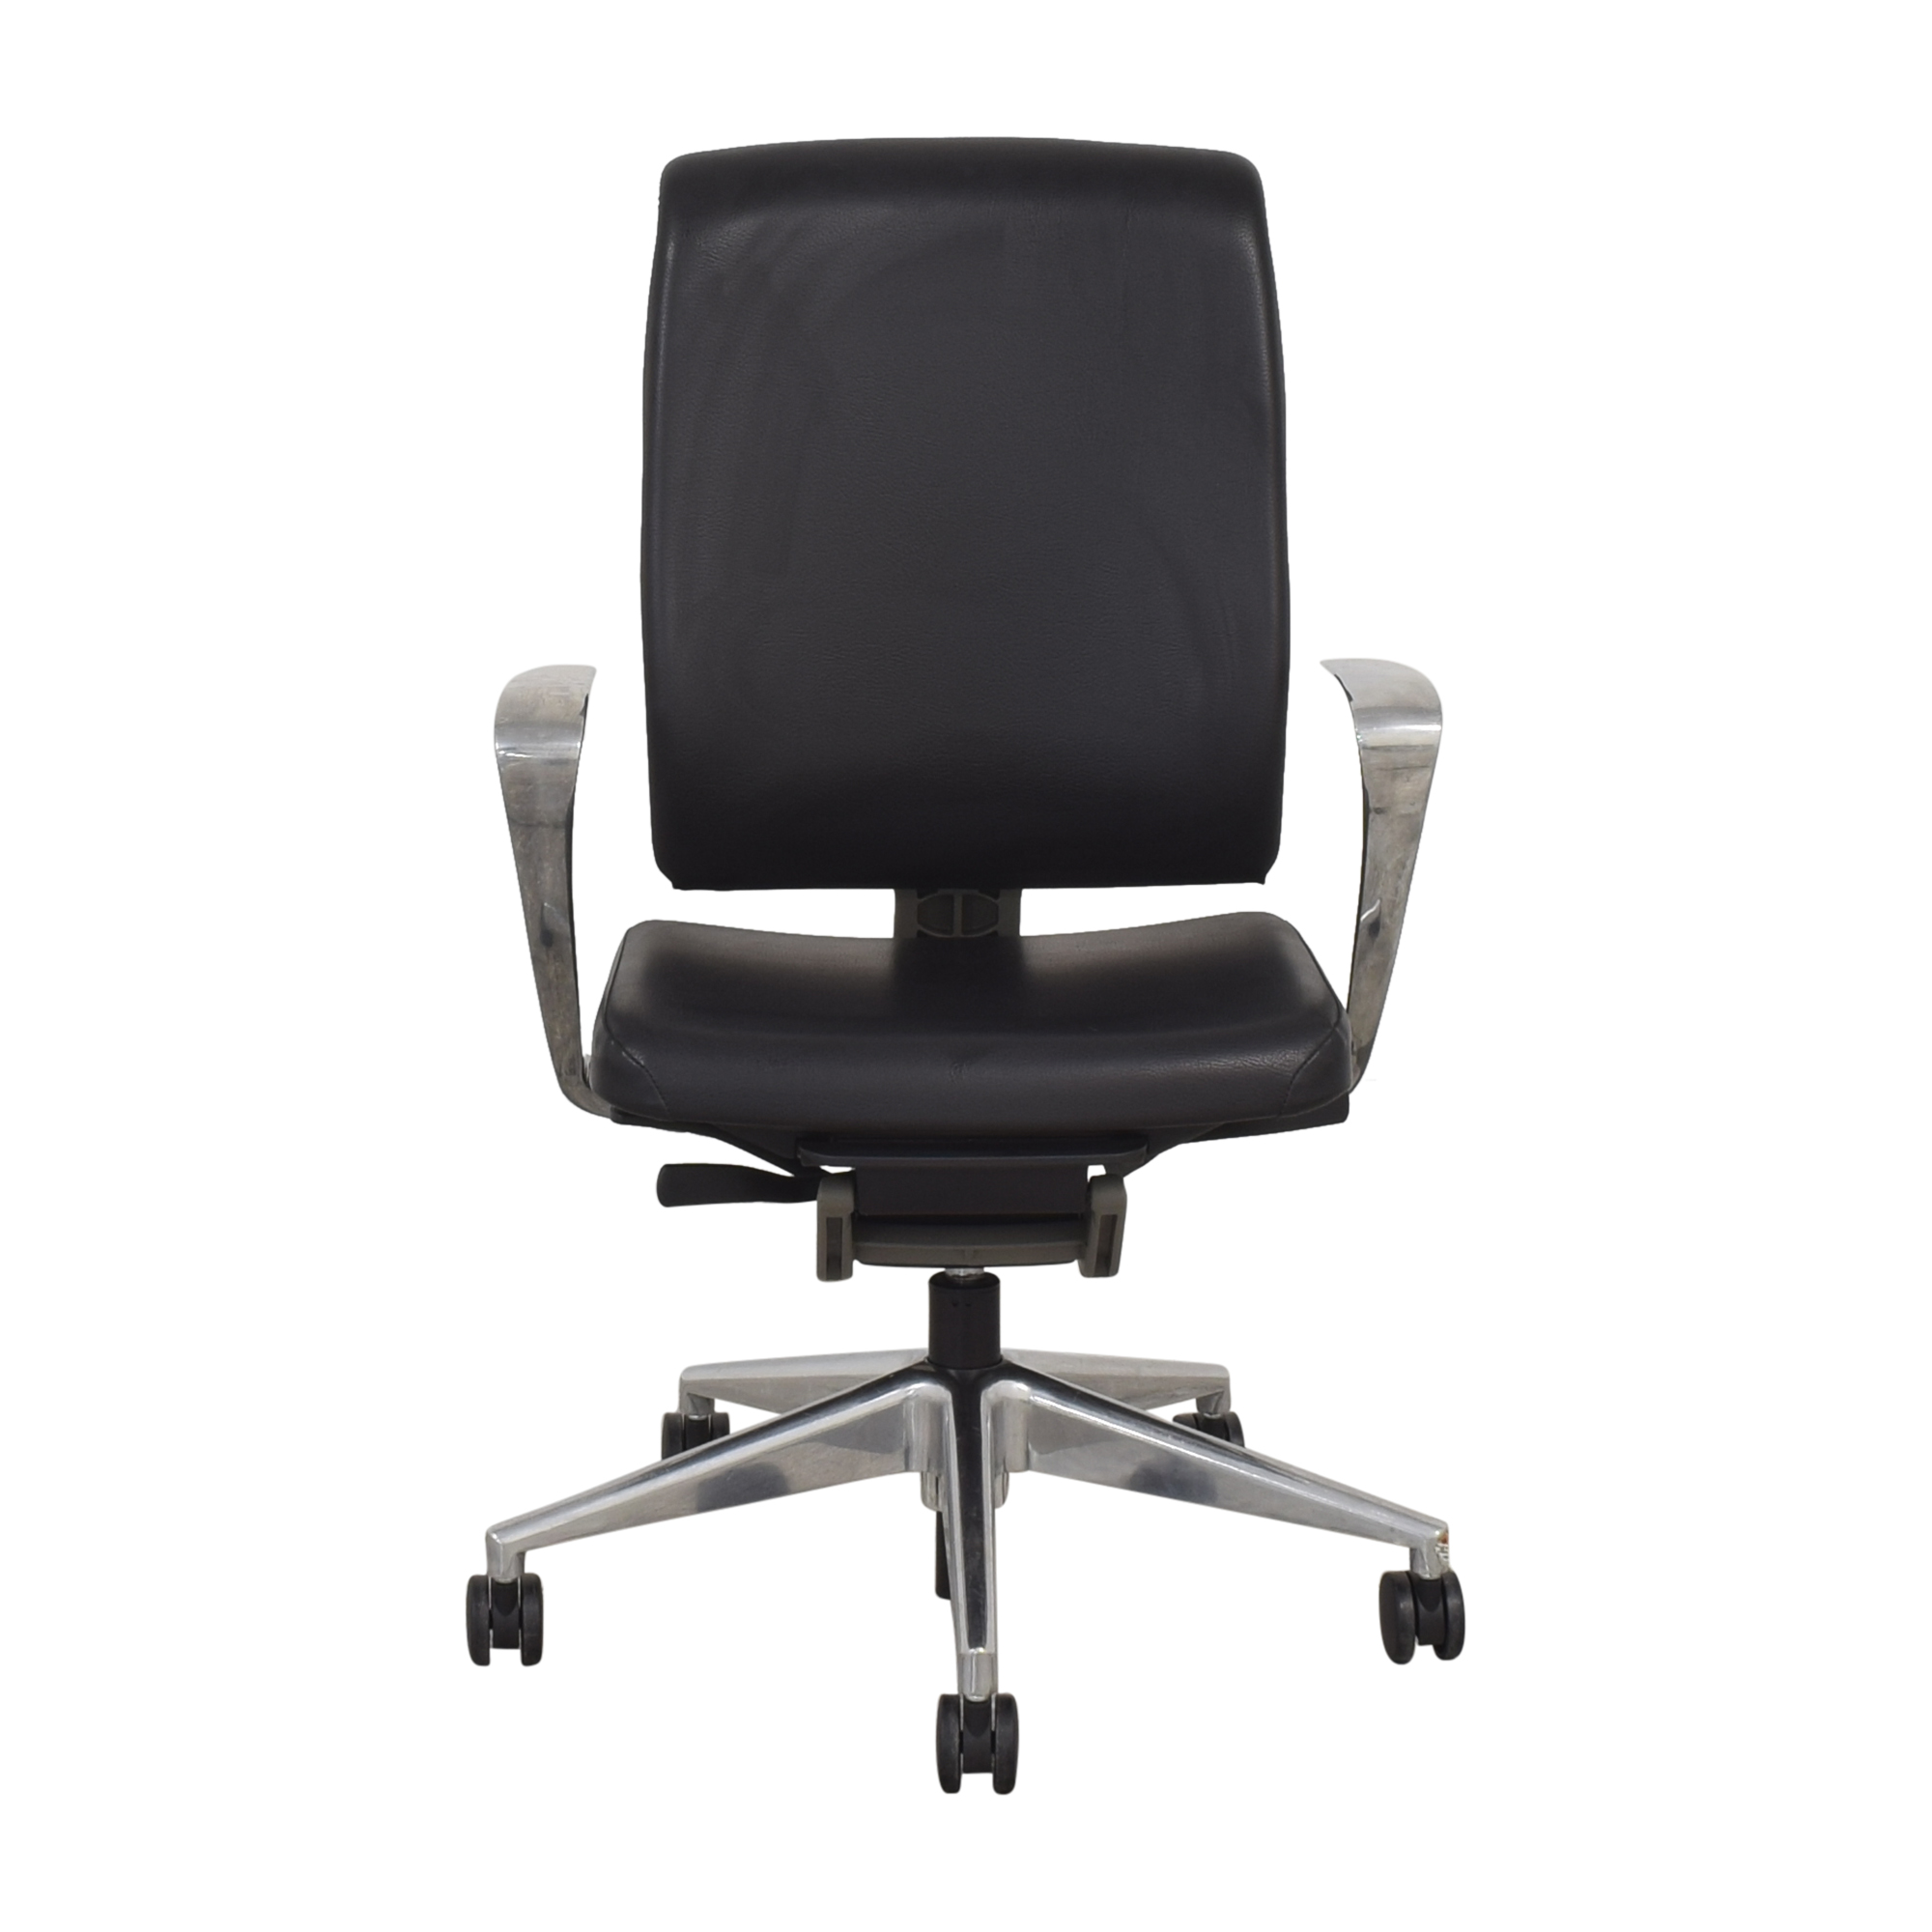 Allsteel Allsteel Task Chair on sale